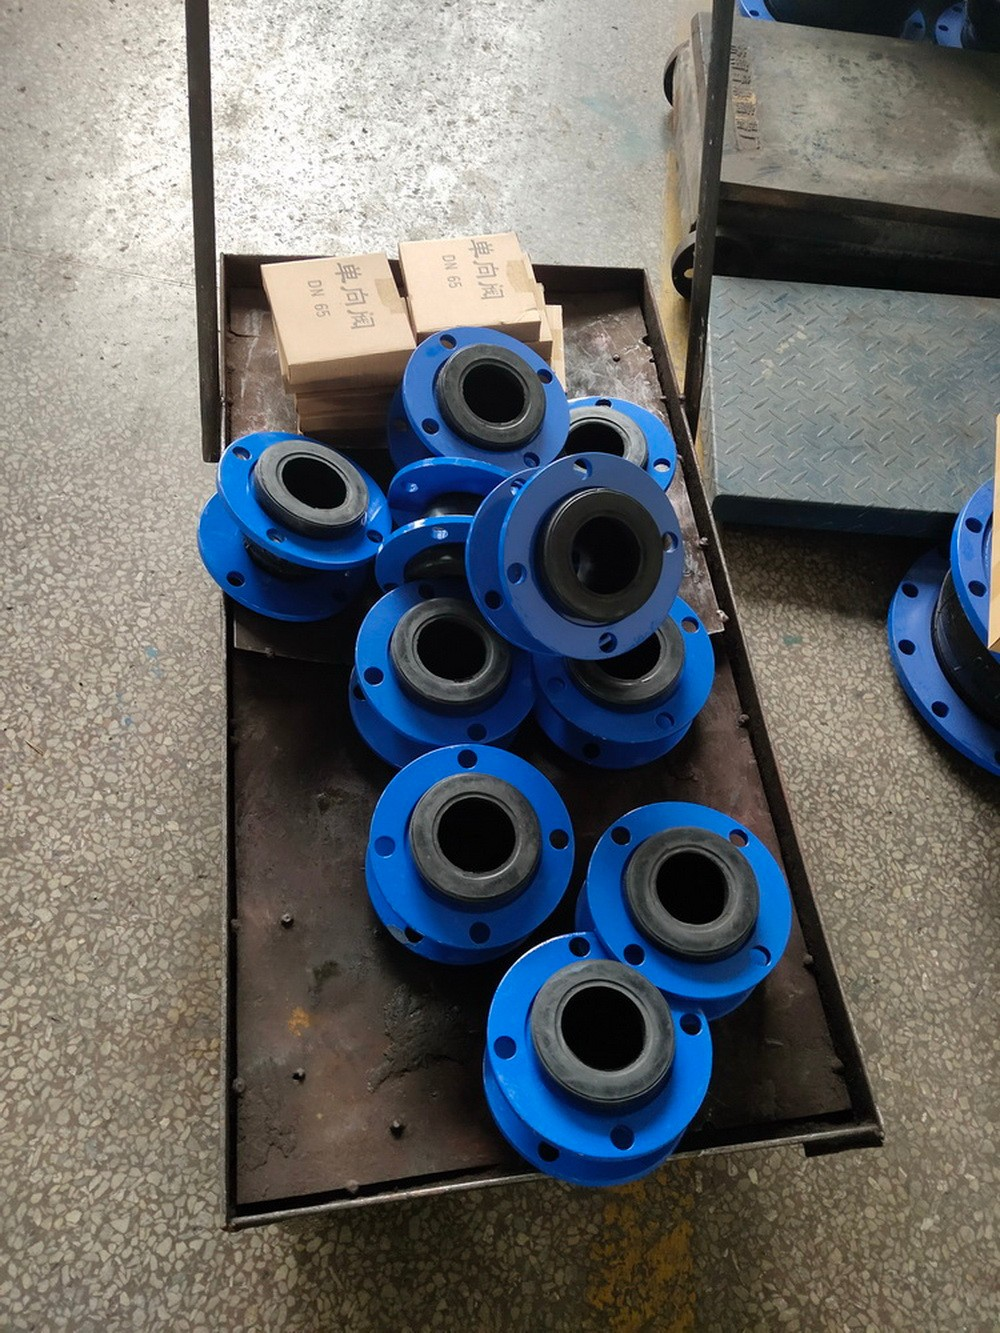 12 sets of DSR65 roots blowers delivery to Europe